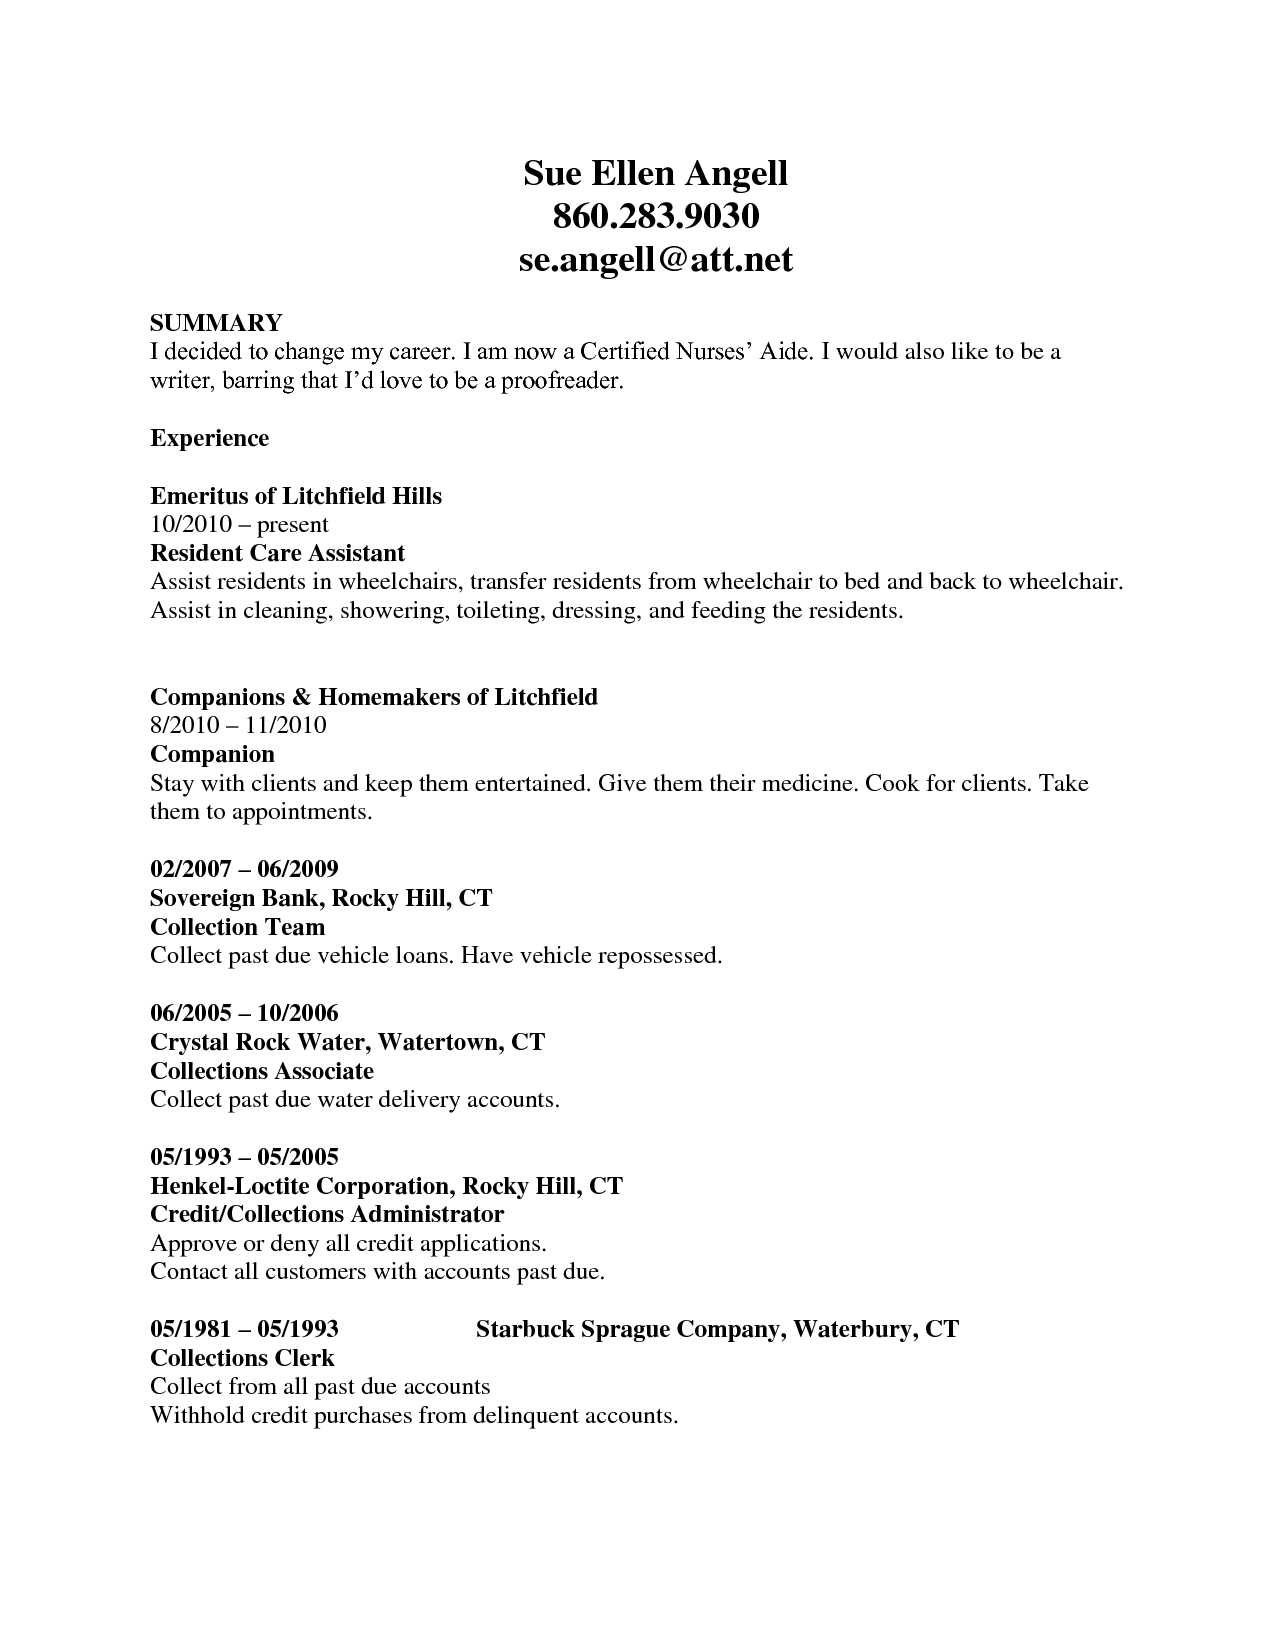 resume examples for cna job  resume maker create professional  also resume examples for cna job best certified nursing assistant resume examplelivecareer cna resume sample click